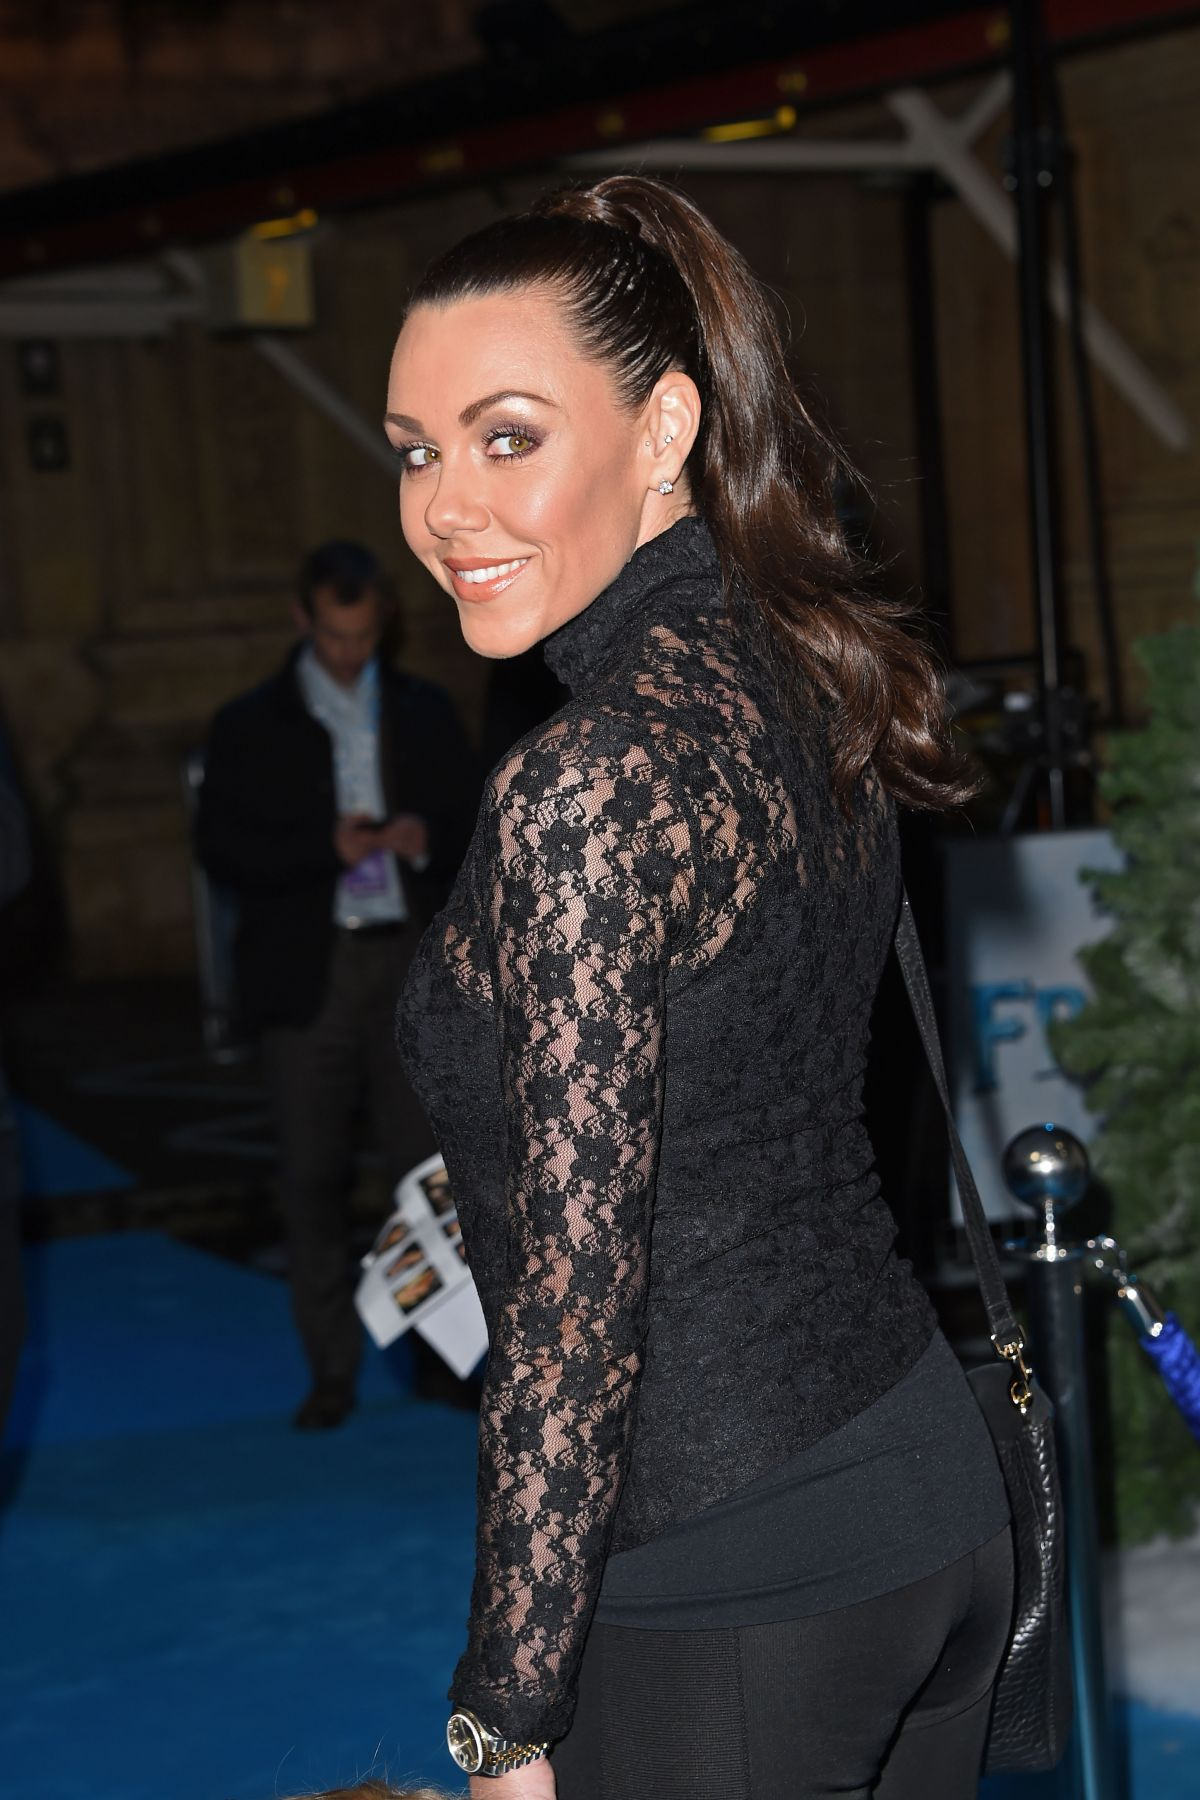 MICHELLE HEATHON at Celebrity Singalong from Frozen at Royal Albert Hall